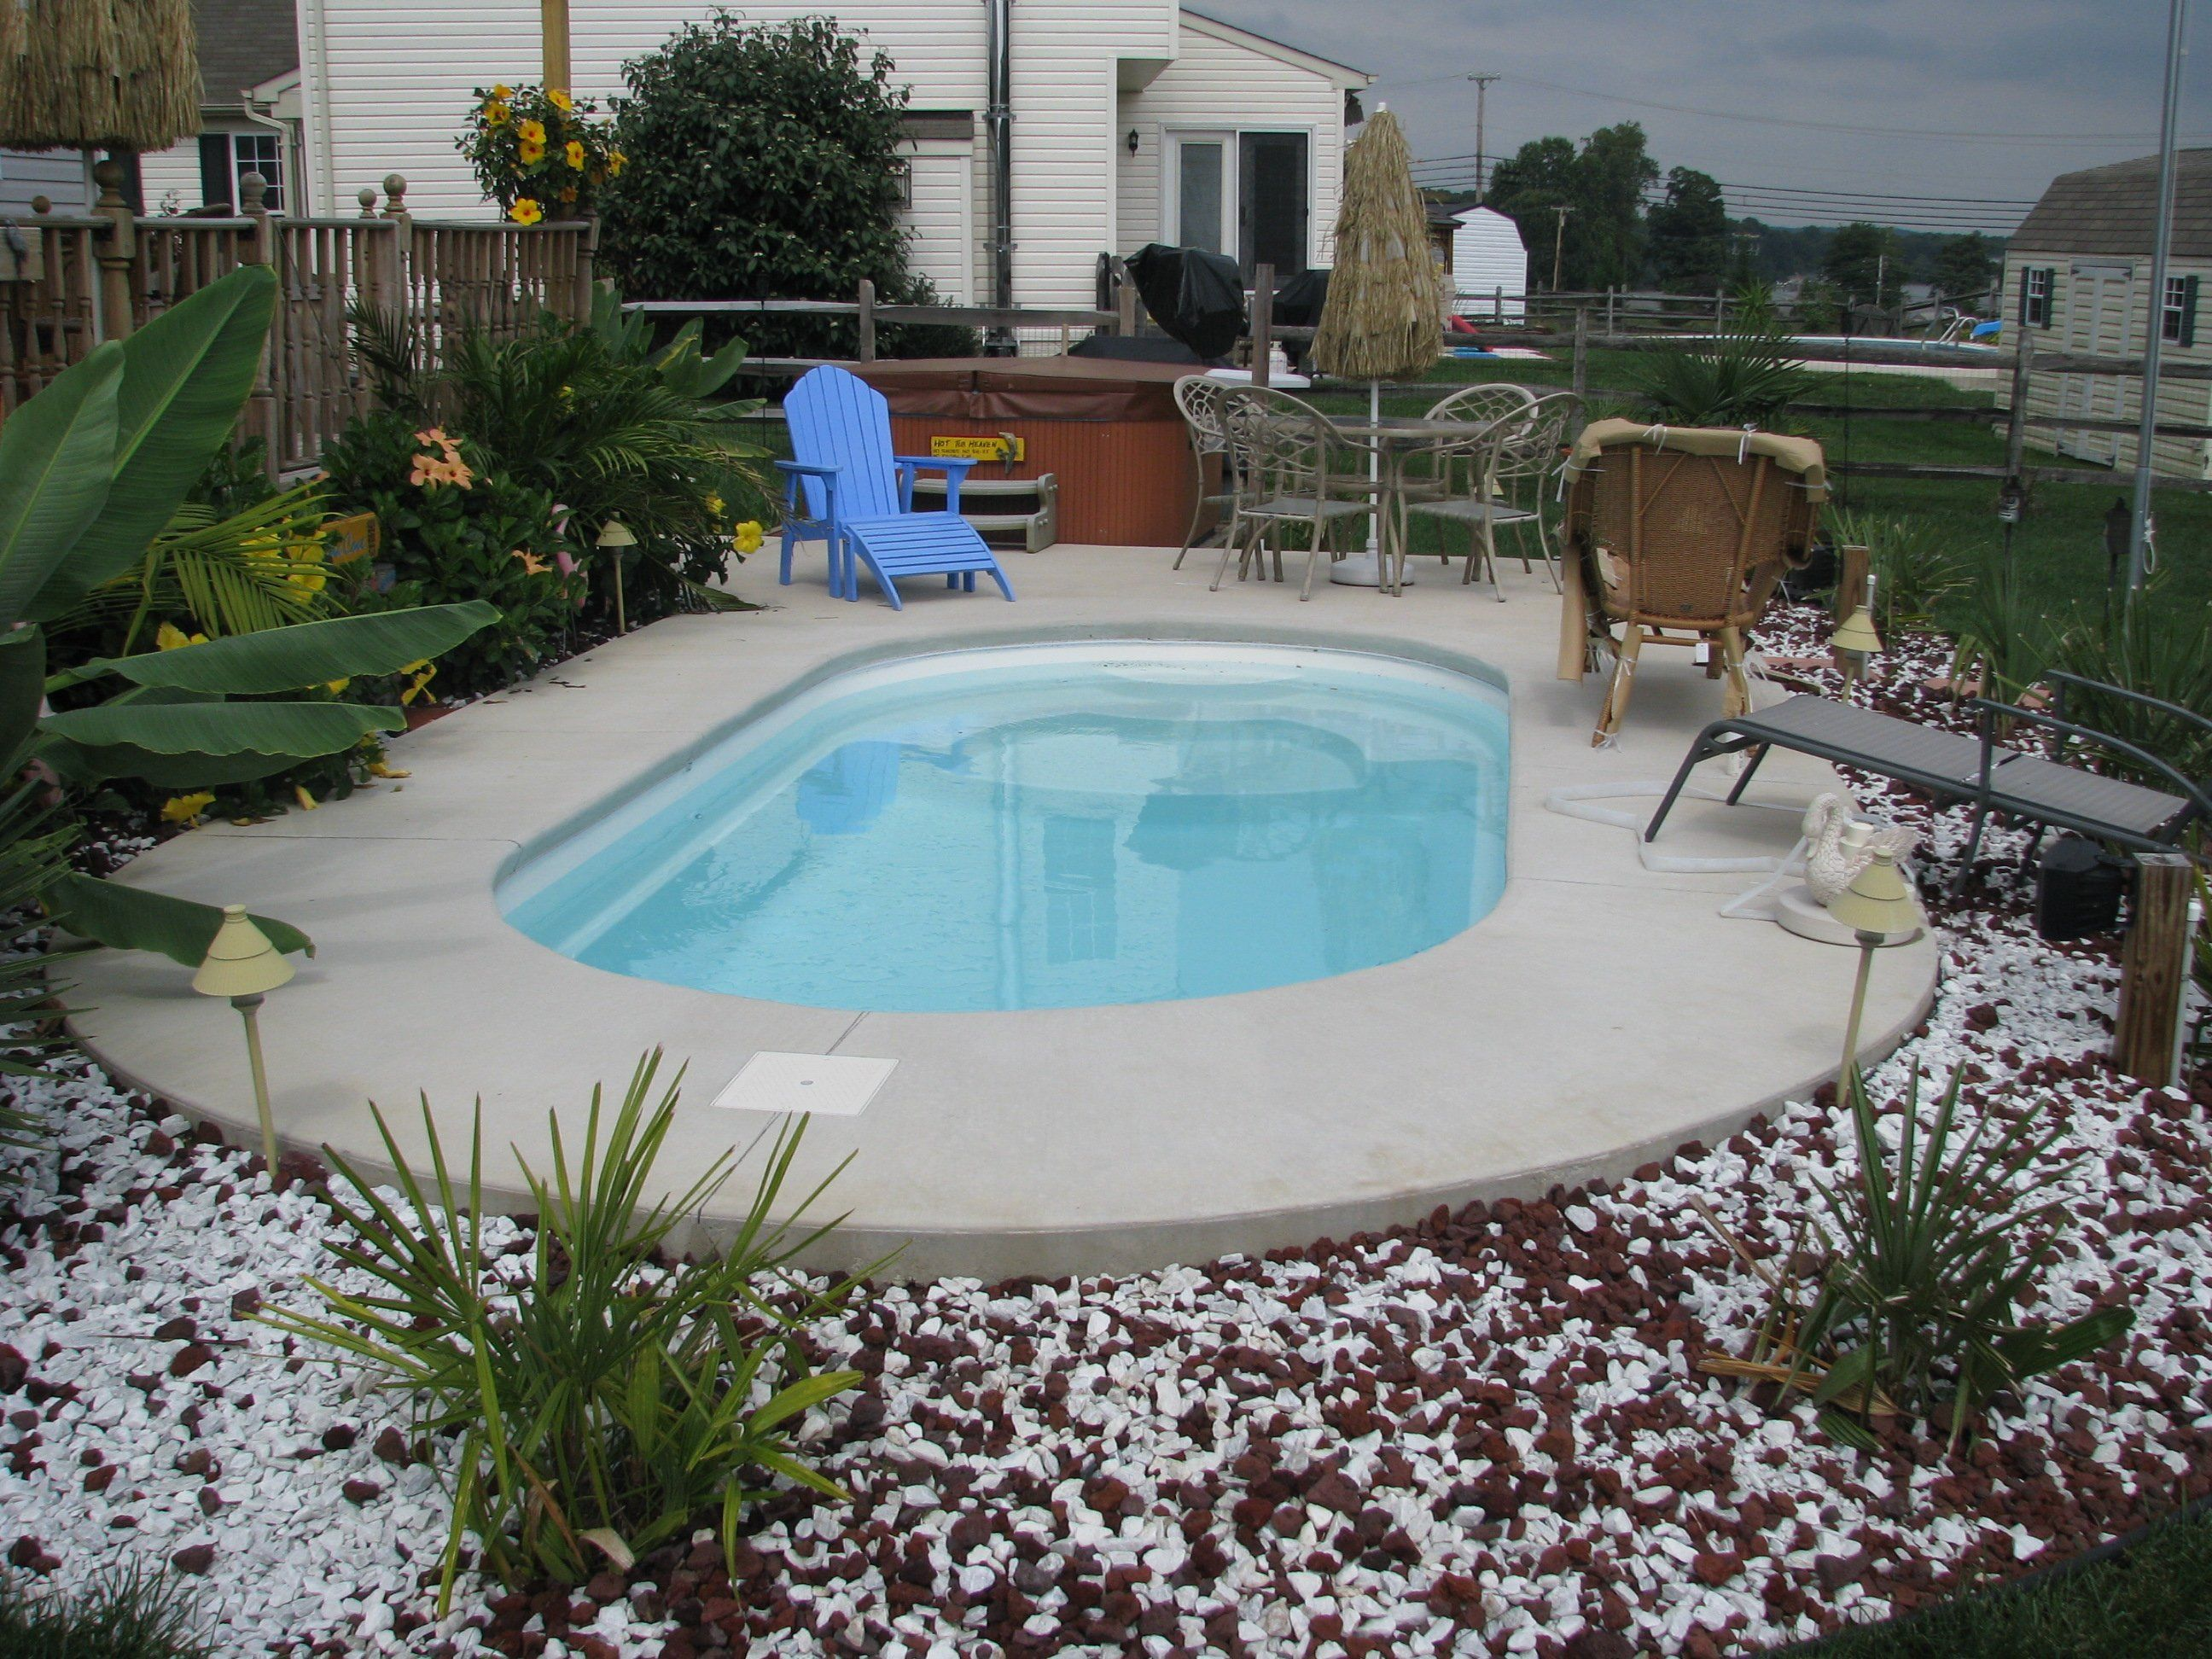 A Simple Small Fiberglass Pool Perfect To Just Cool Off In For